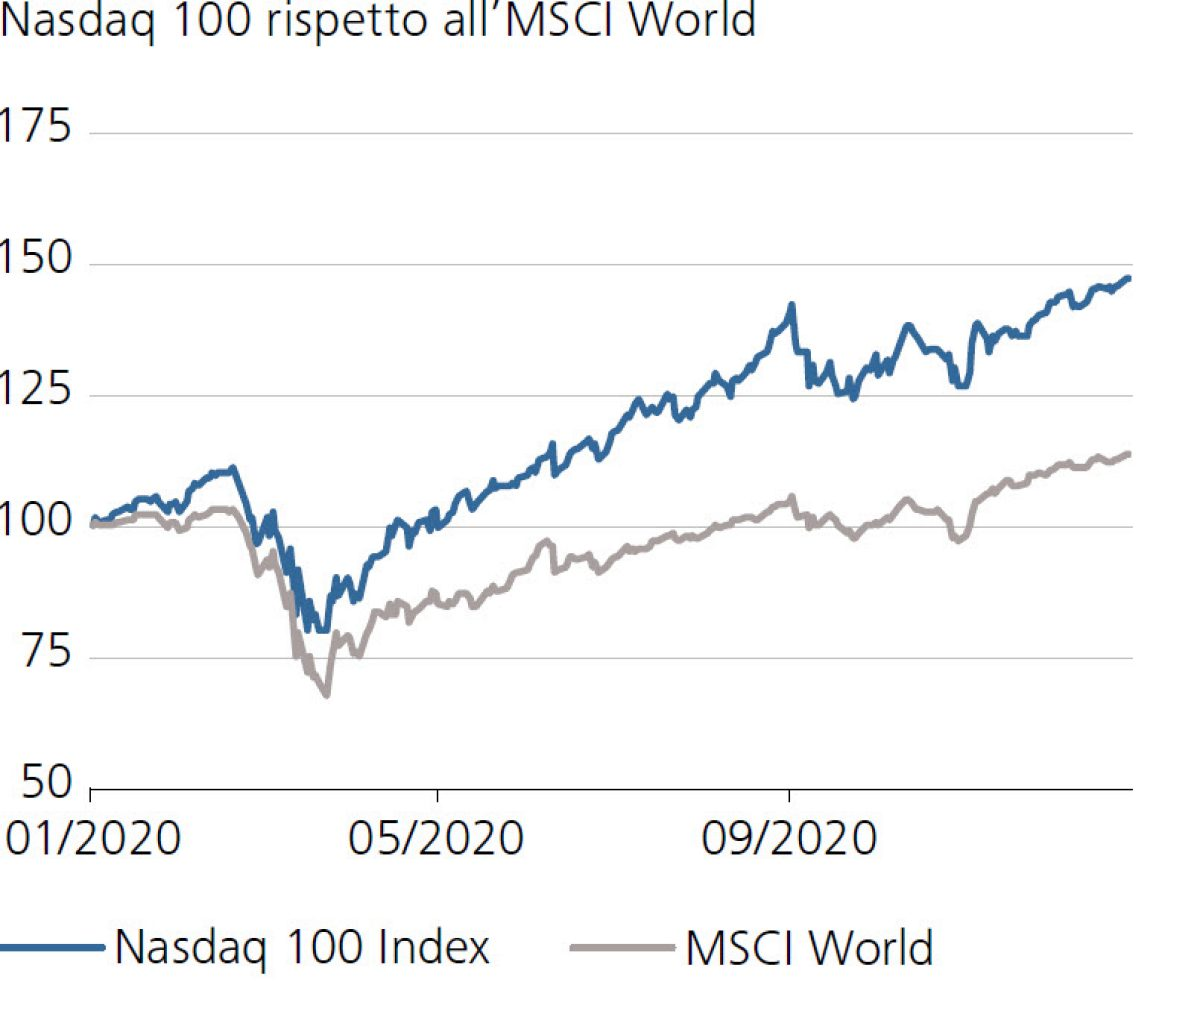 Nasdaq 100 rispetto all'MSCI World